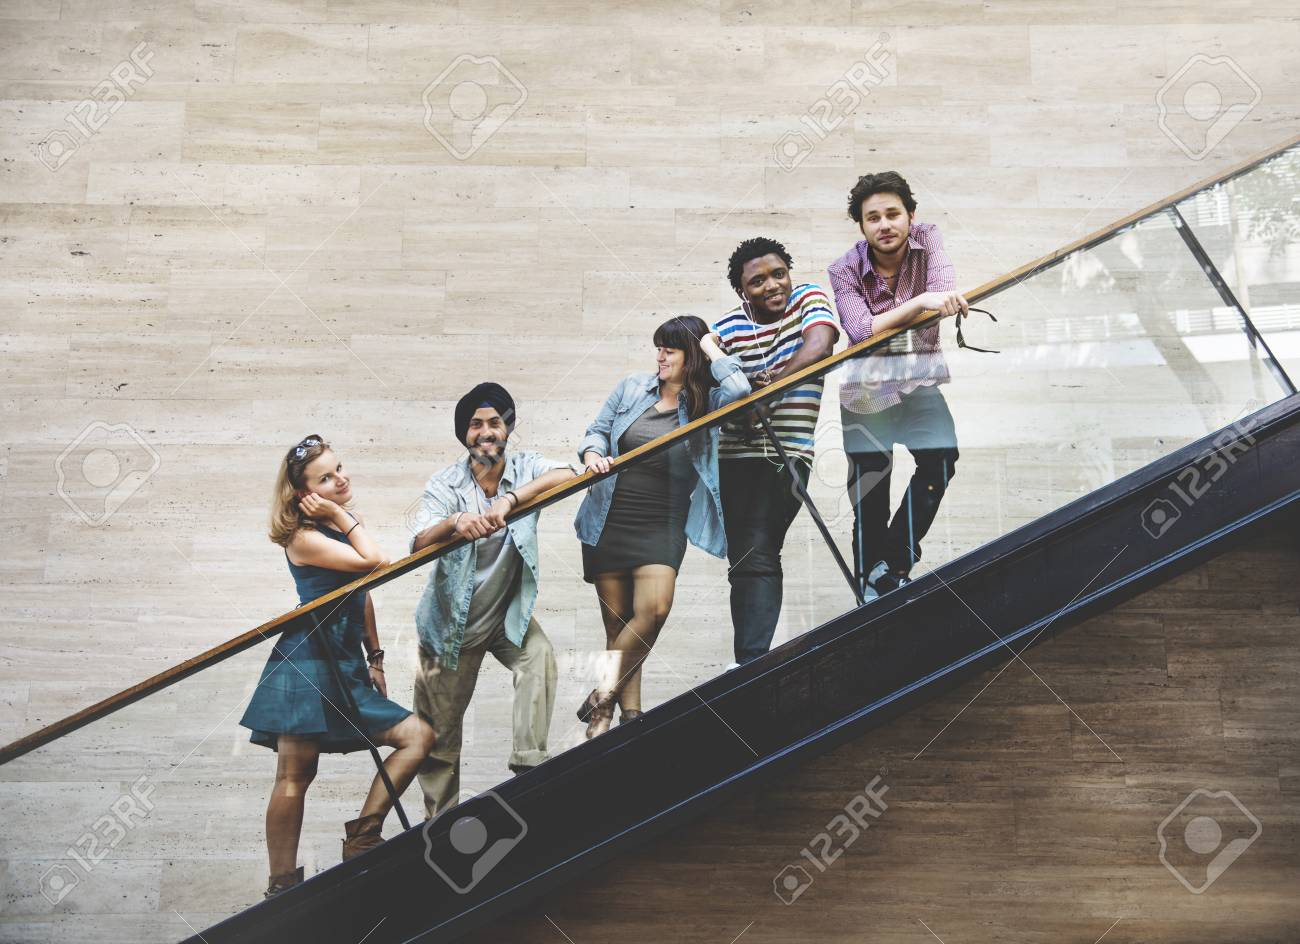 Diversity Teenager Friends Youth Culture Concept - 52325581